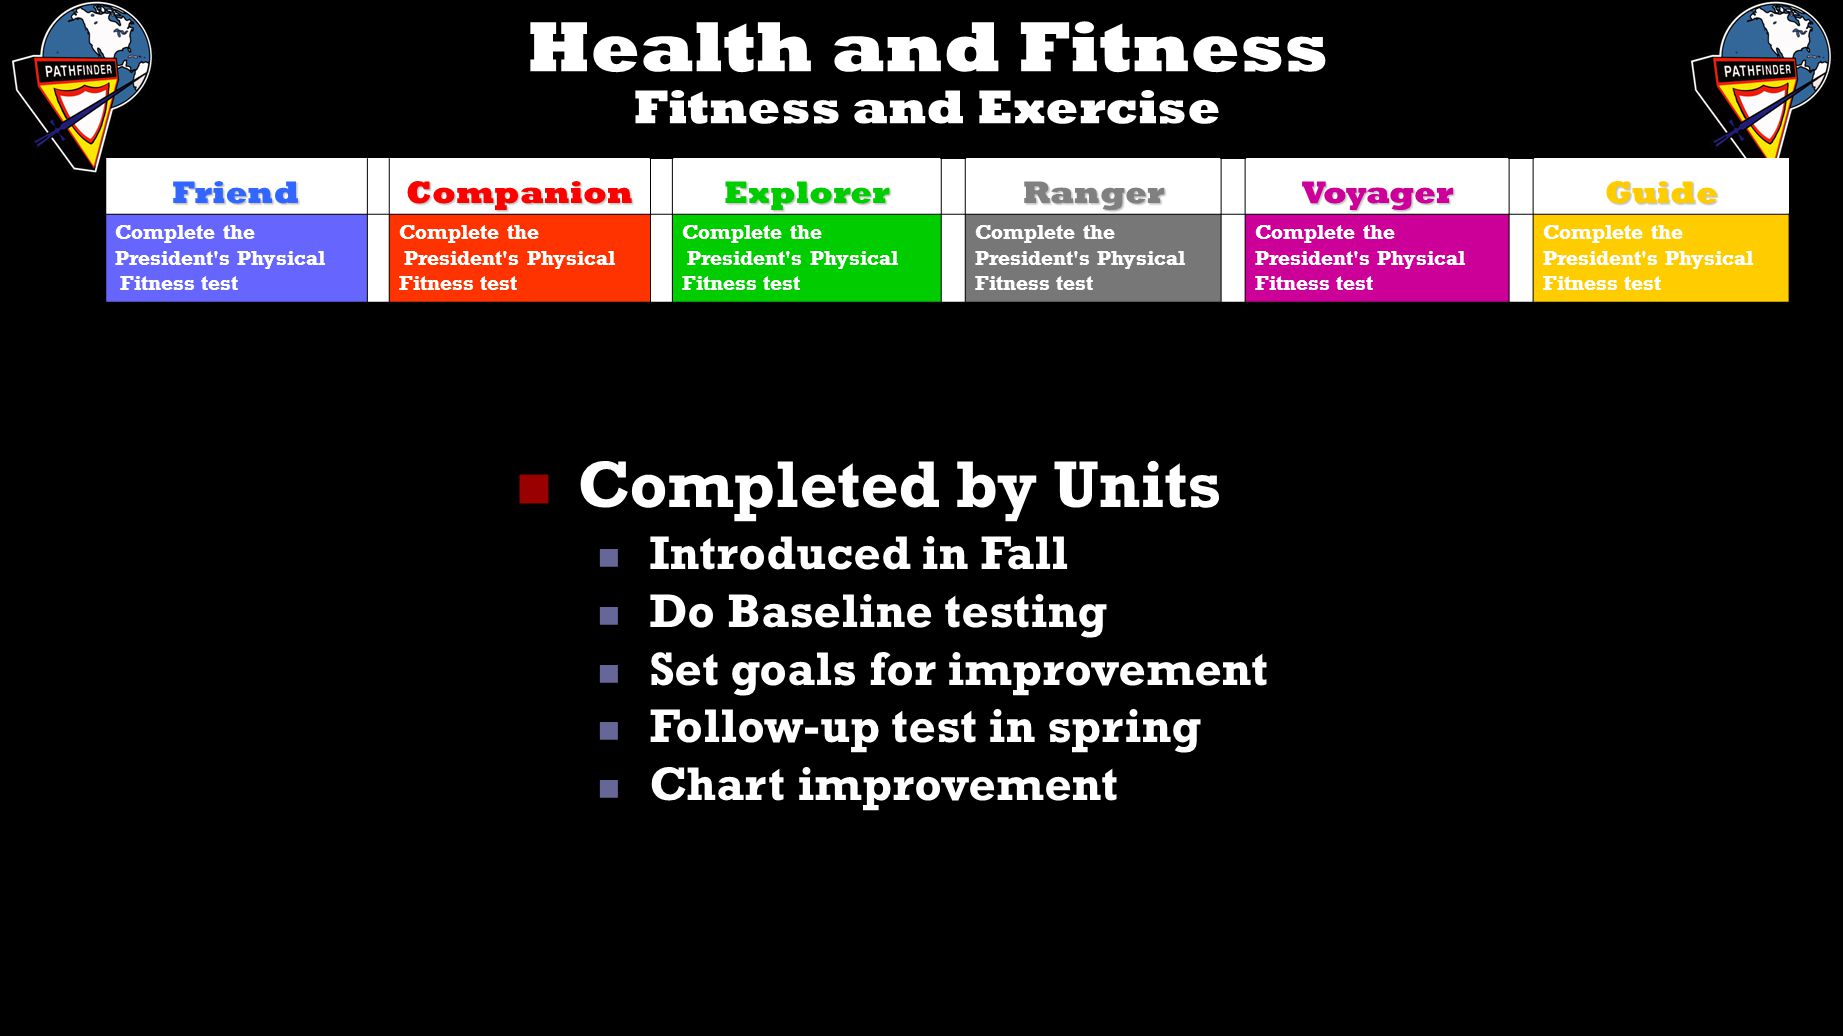 Health and Fitness Fitness and Exercise